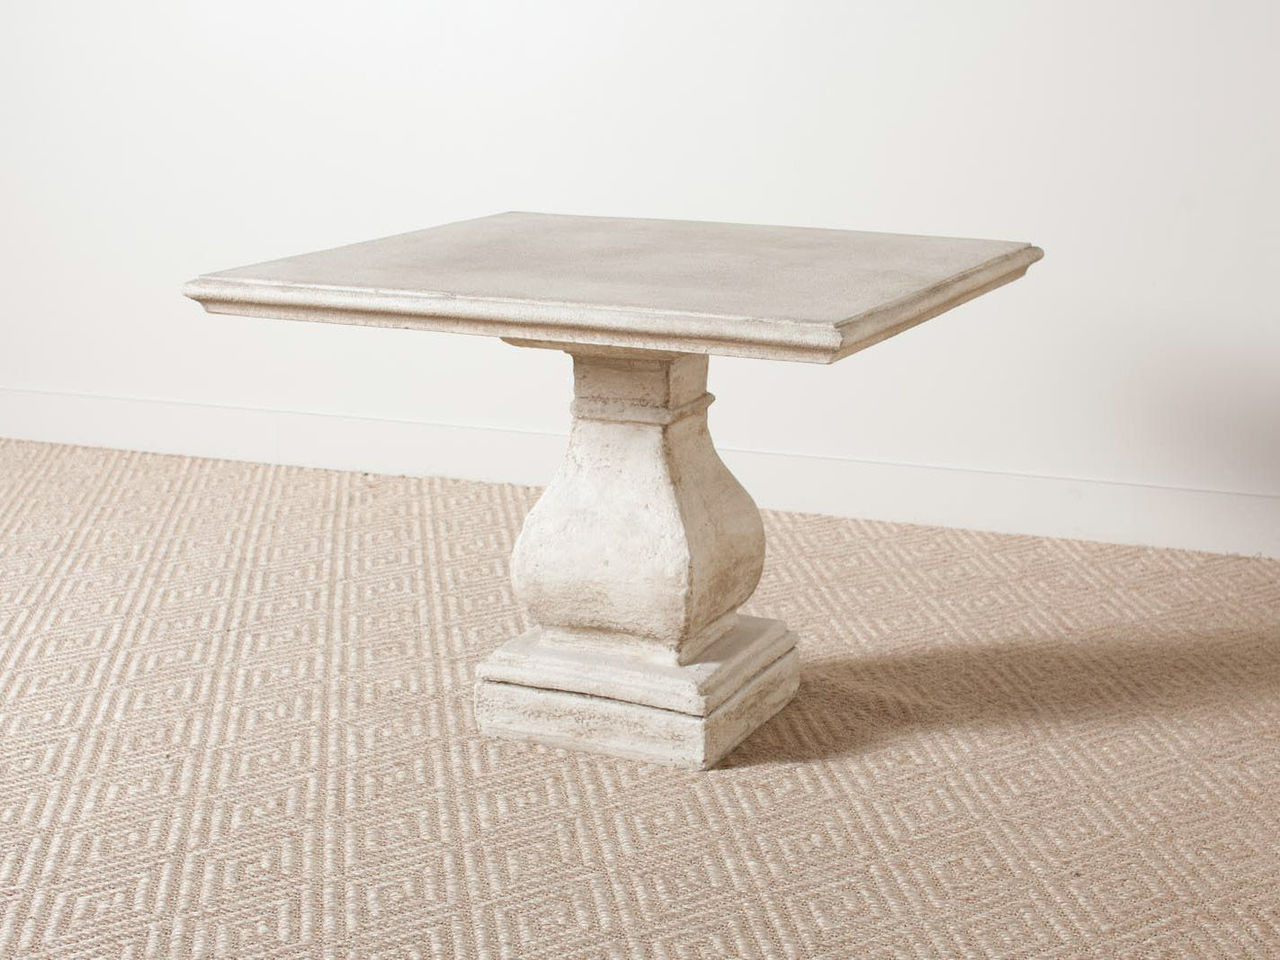 Miraculous Perfect Square Dining Table Interior Design Ideas Clesiryabchikinfo